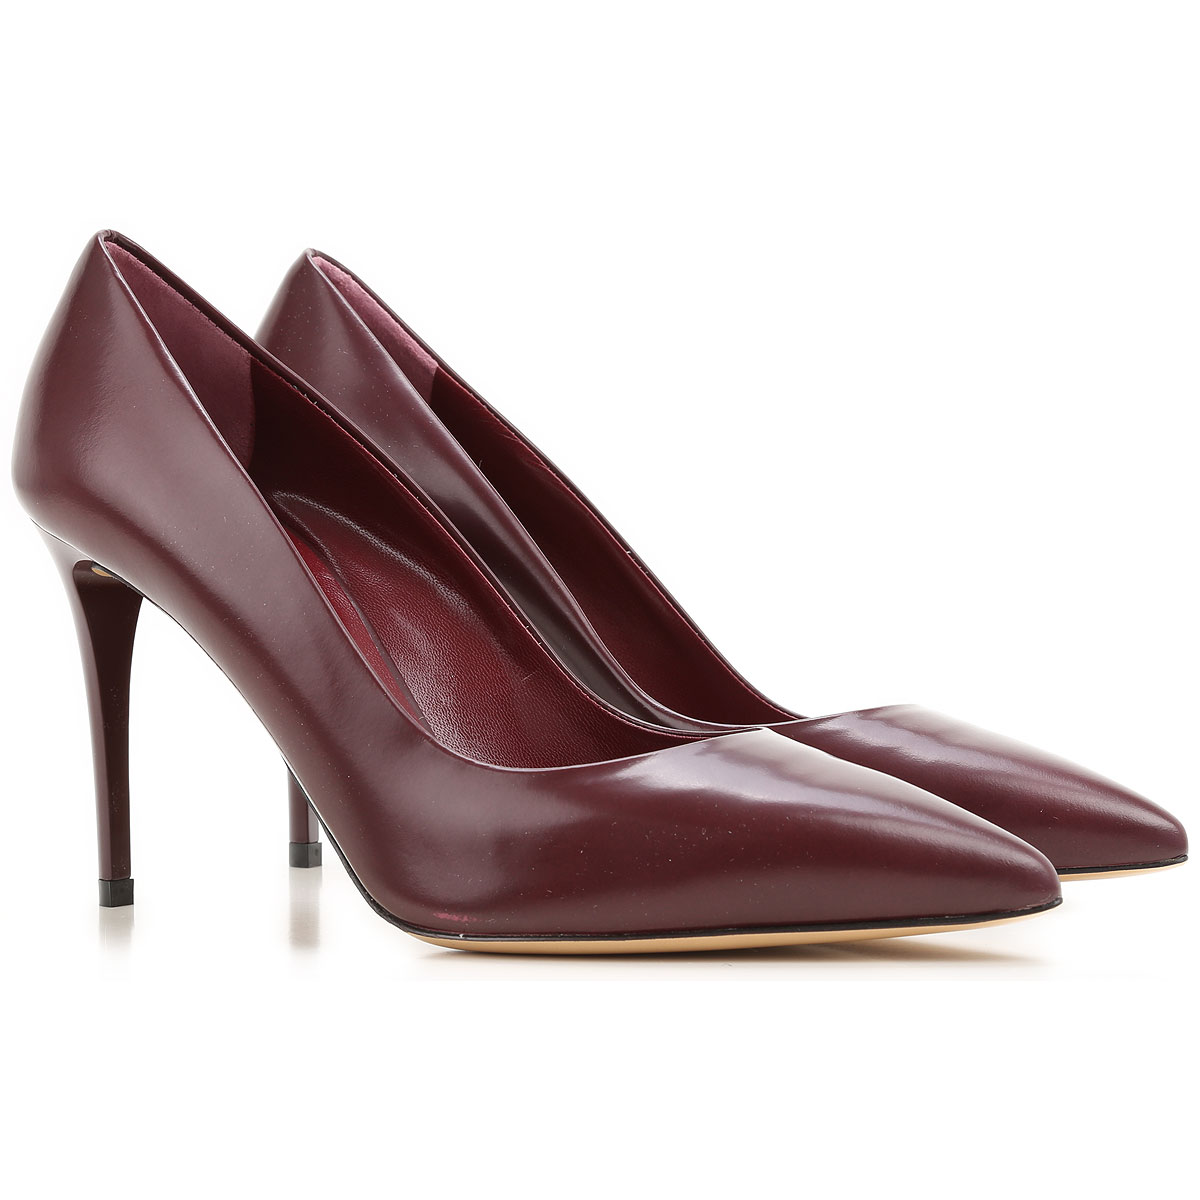 Nina Lilou Pumps & High Heels for Women On Sale in Outlet, Bordeaux, Leather, 2019, 10 9